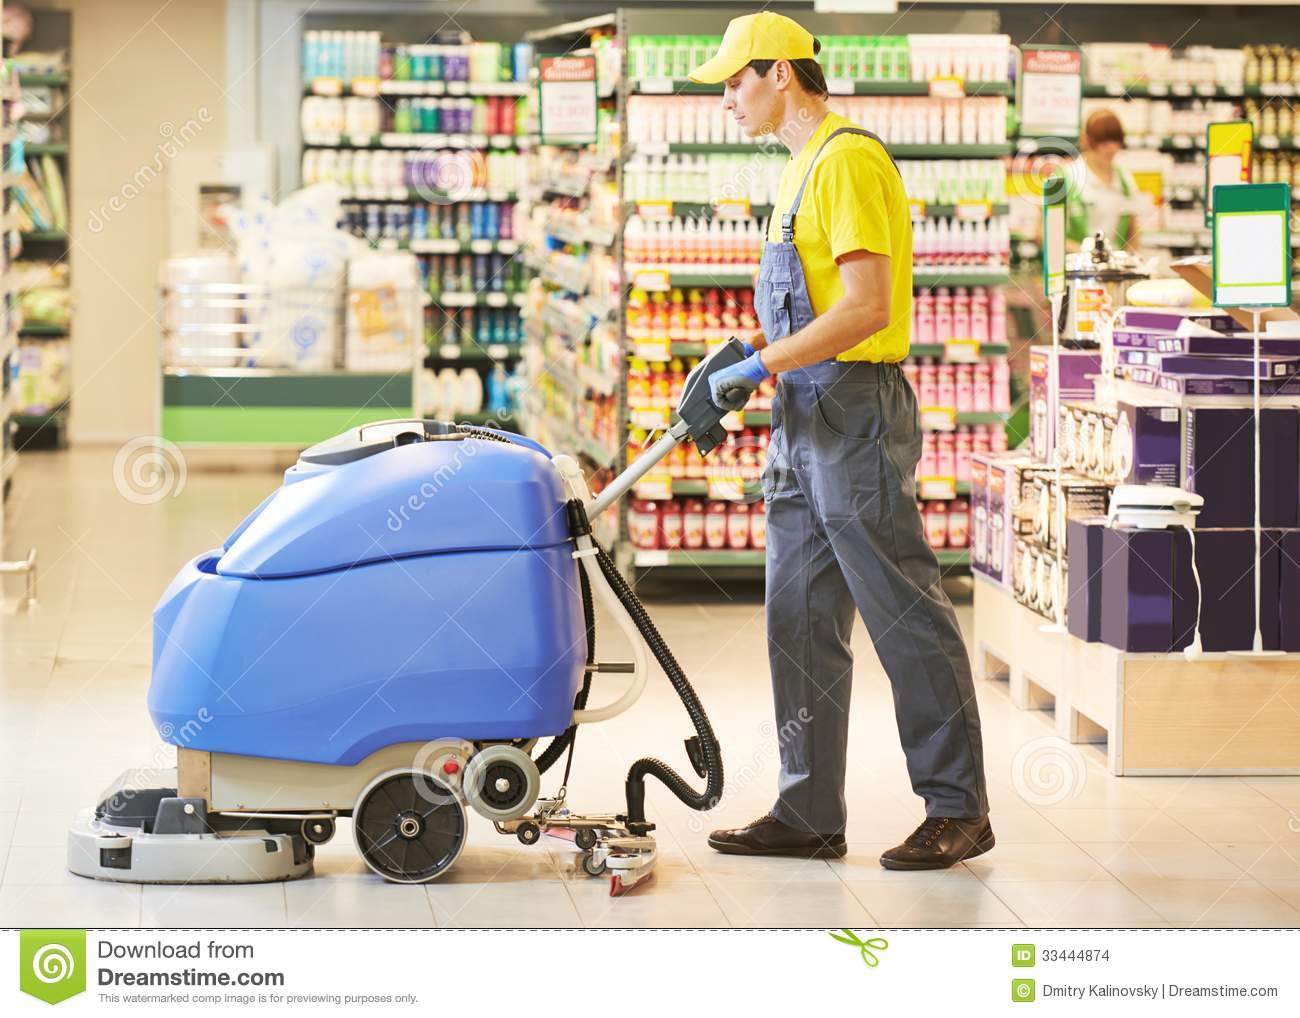 Worker Cleaning Store Floor With Machine Stock Images